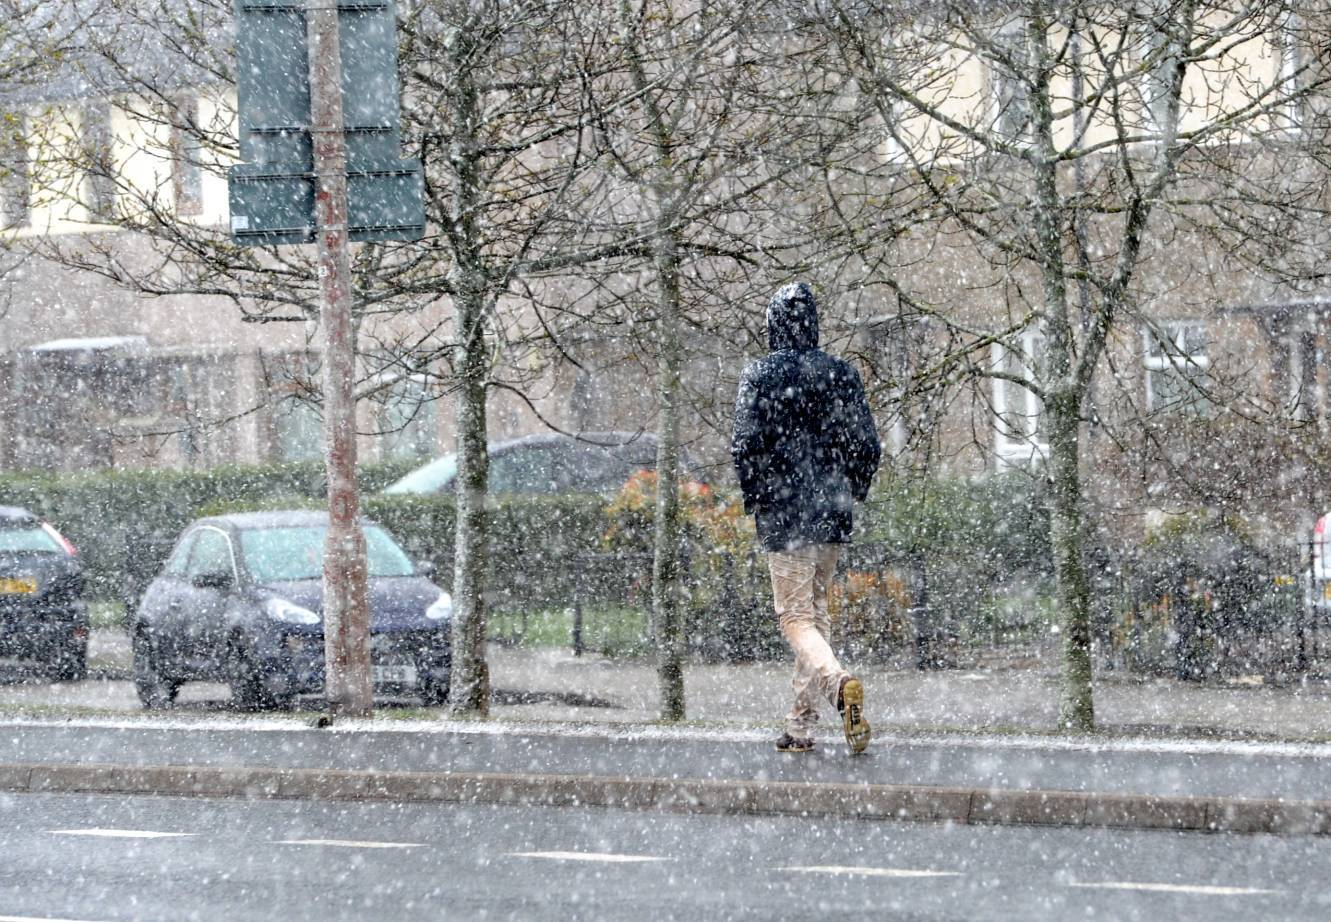 Snow is expected to fall in Aberdeen this weekend.